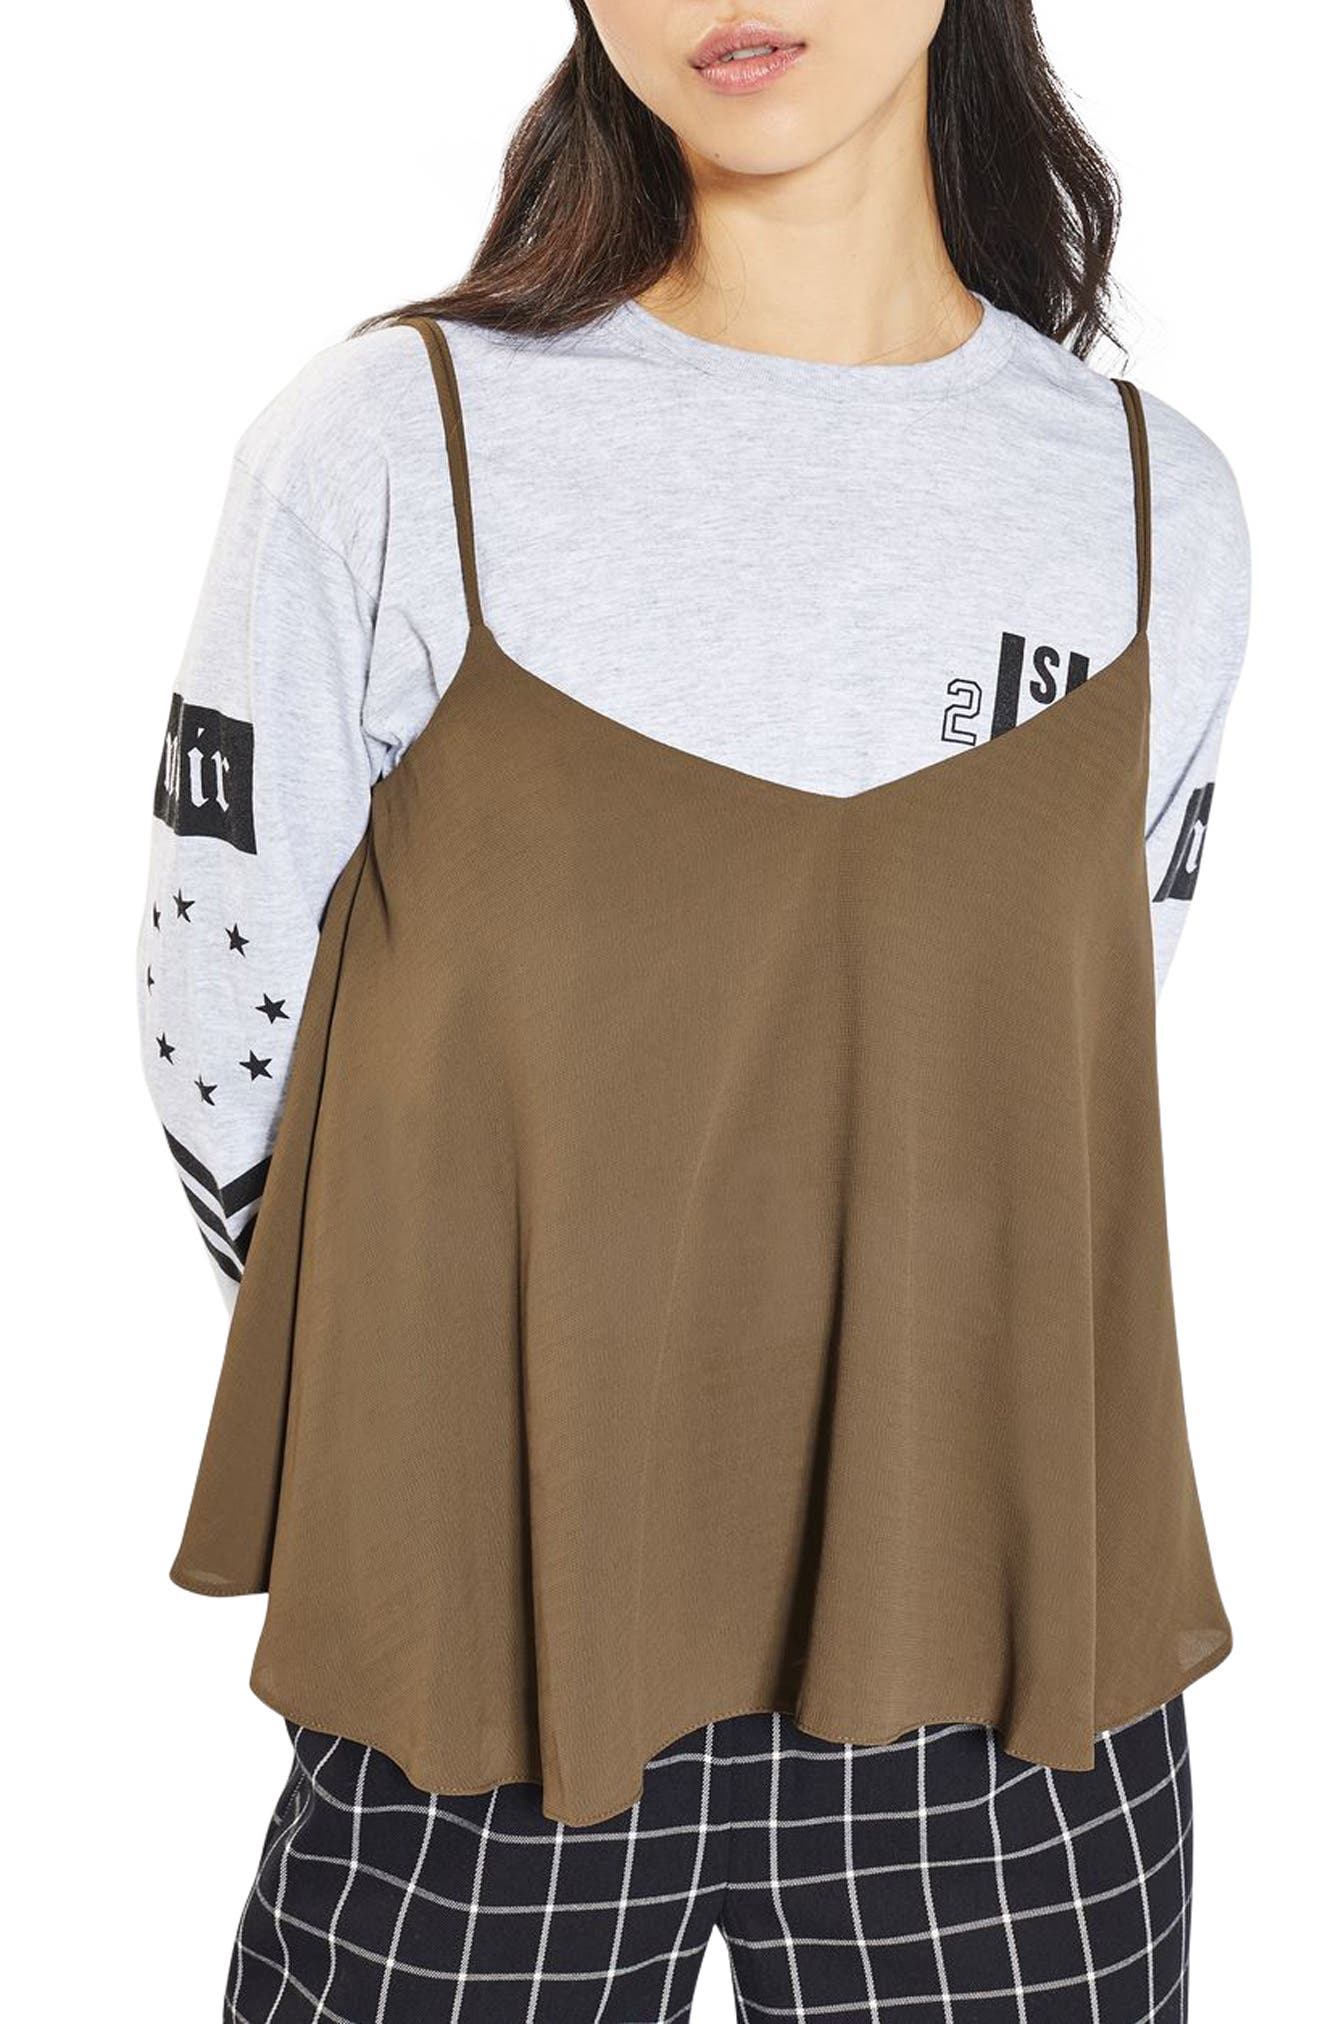 Main Image - Topshop Rouleau Swing Camisole (Regular & Petite)